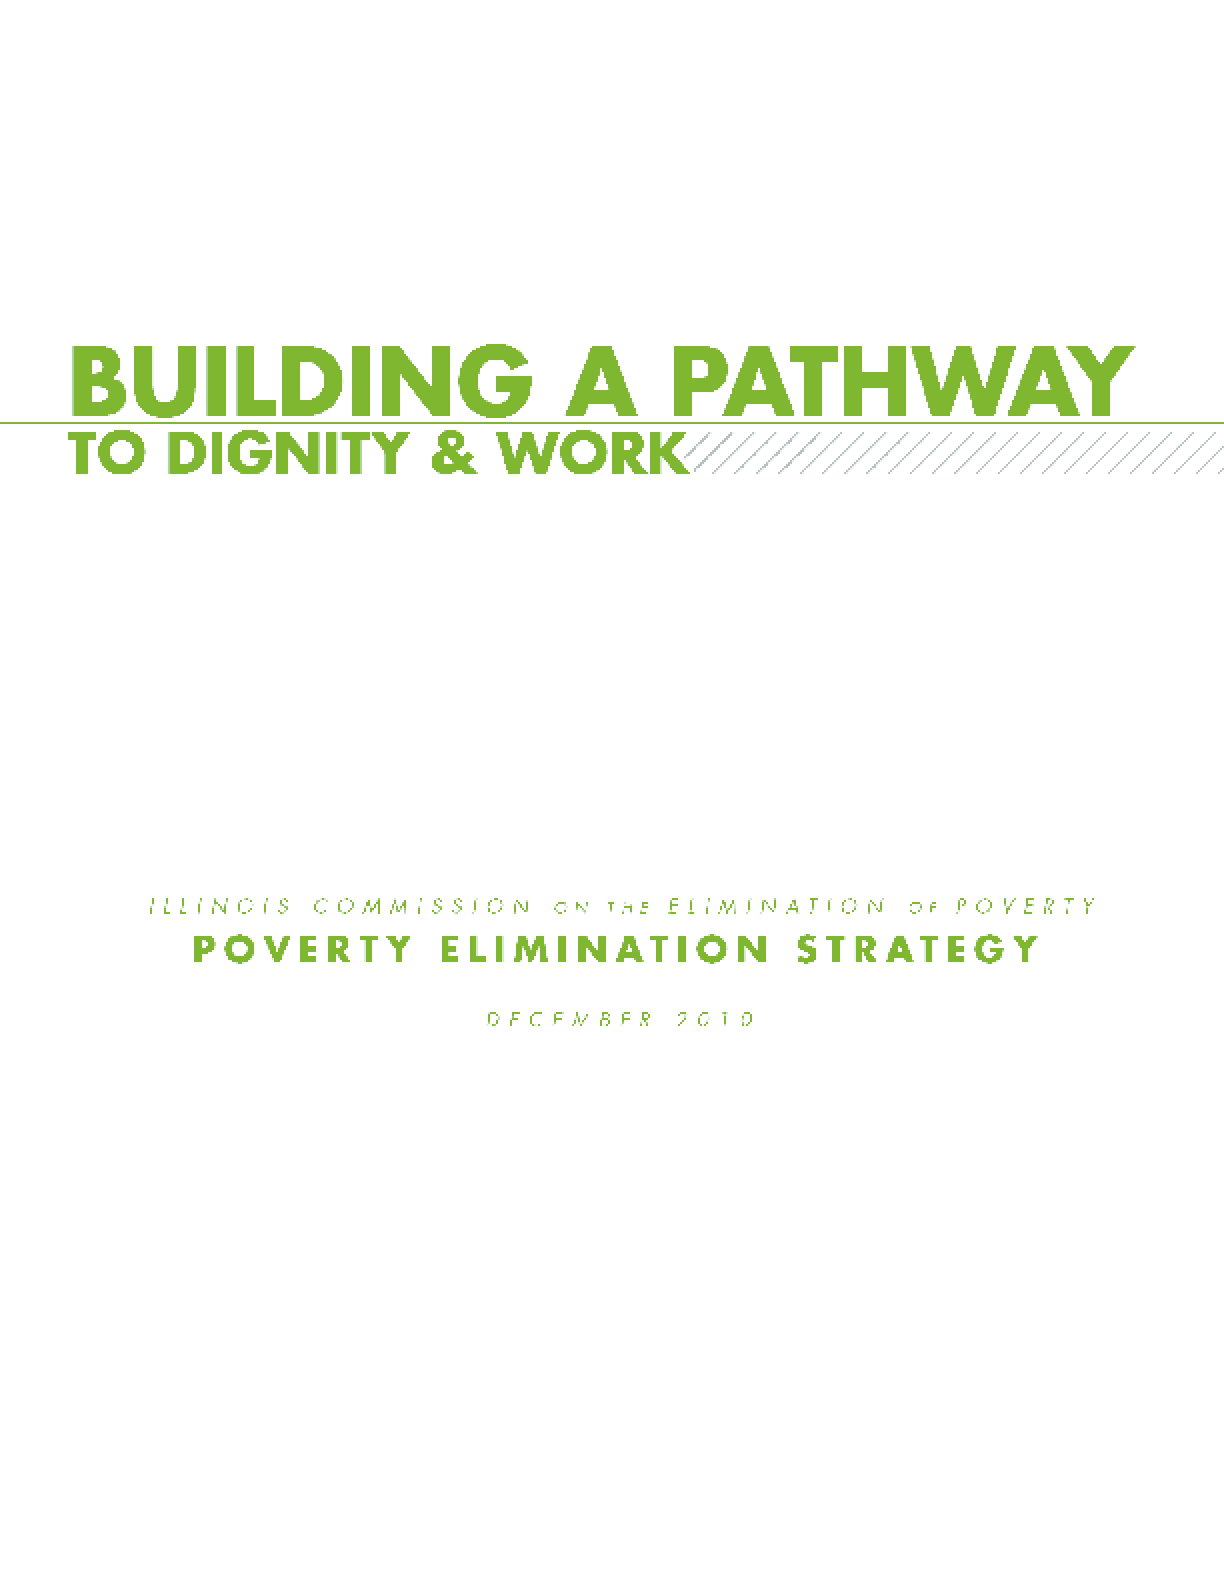 Building a Pathway to Dignity & Work: Poverty Elimination Strategy